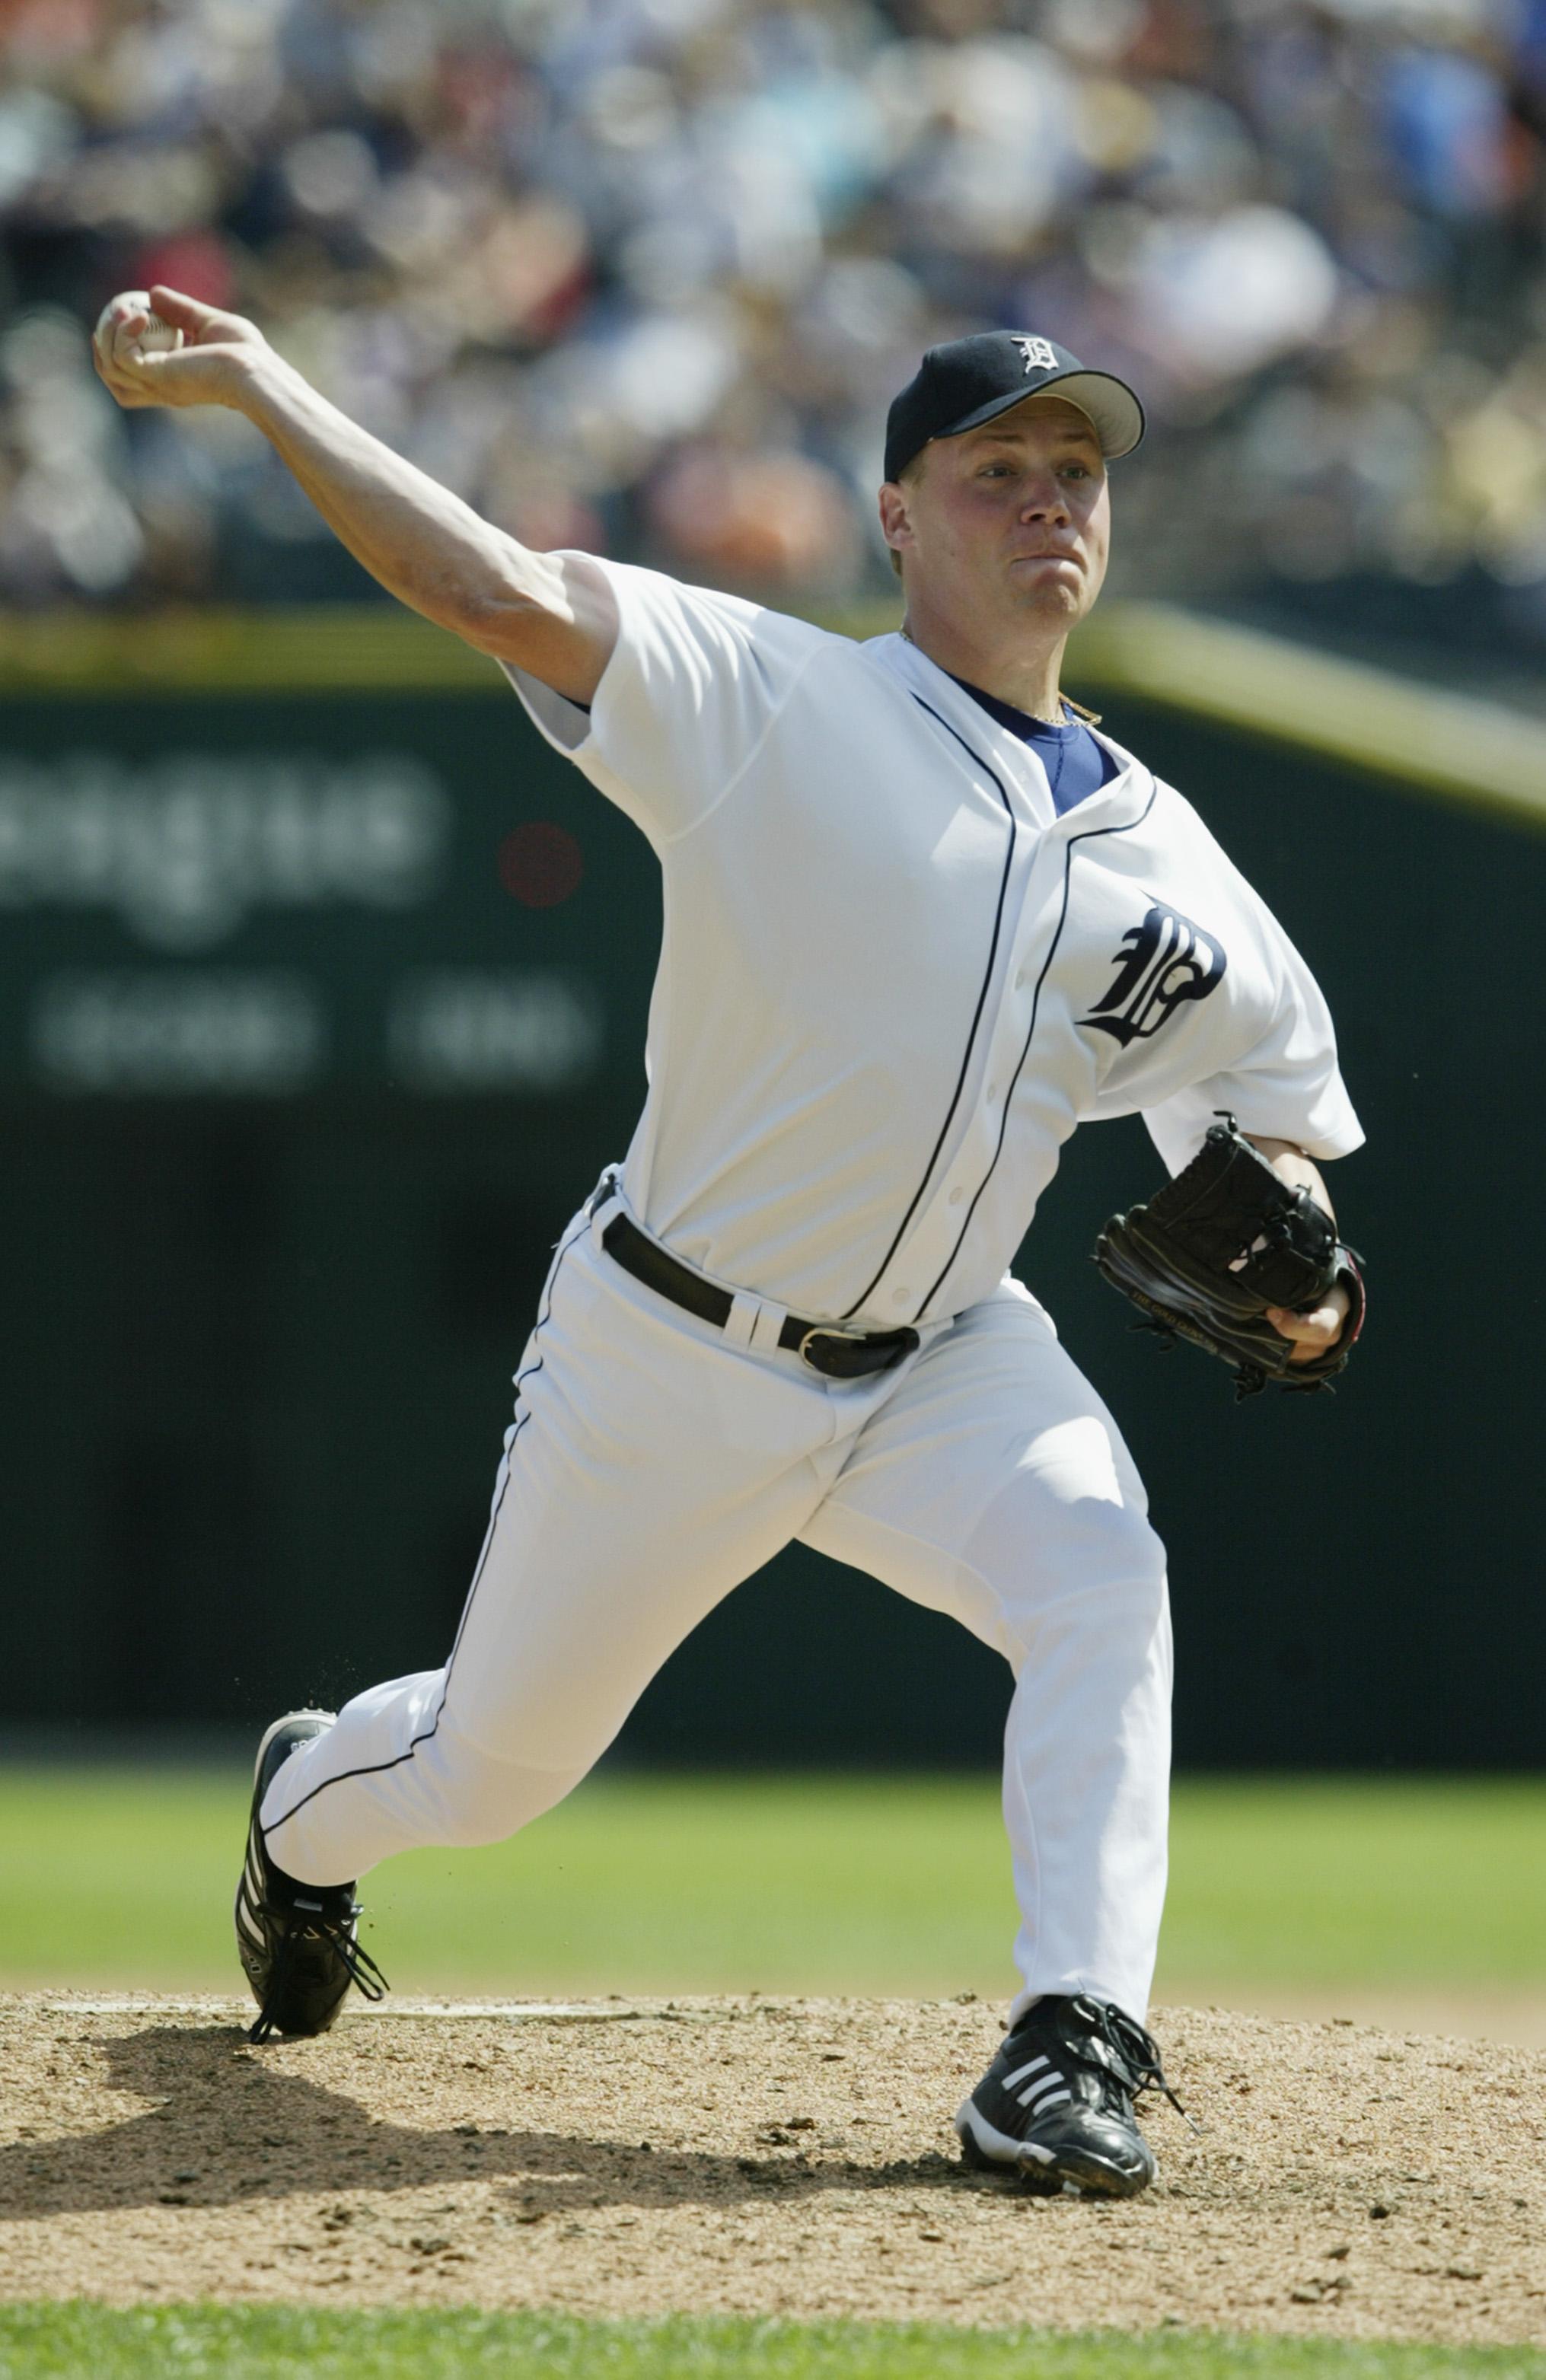 DETROIT- AUGUST 23:  Pitcher Matt Roney #52 of the Detroit Tigers delivers against the Anaheim Angels at Comerica Park on August 23, 2003 in Detroit, Michigan.  The Angels defeated the Tigers in 10 innings 14-8.  (Photo by Tom Pidgeon/Getty Images)